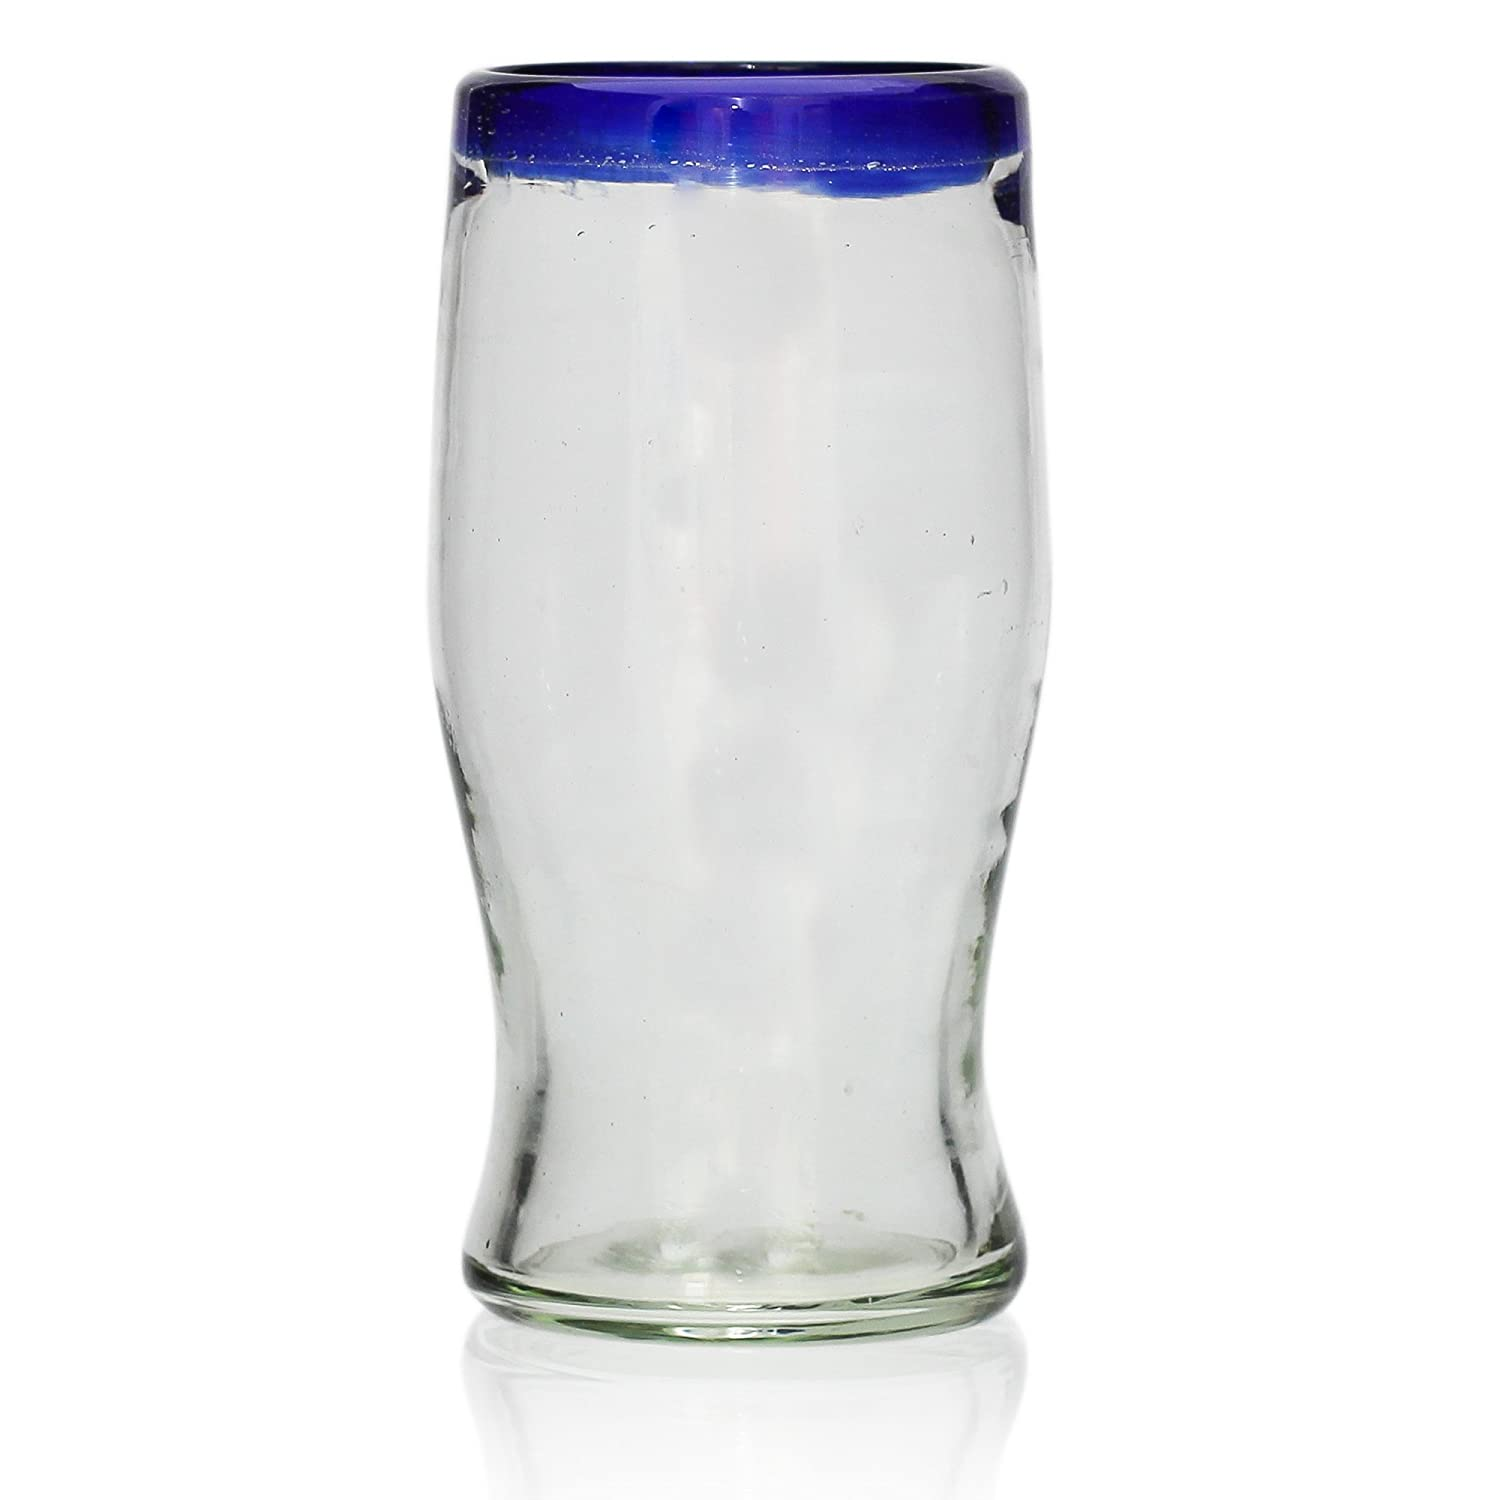 Handmade Pint Glass – Blue Rim - Single Glass Tumia LAC